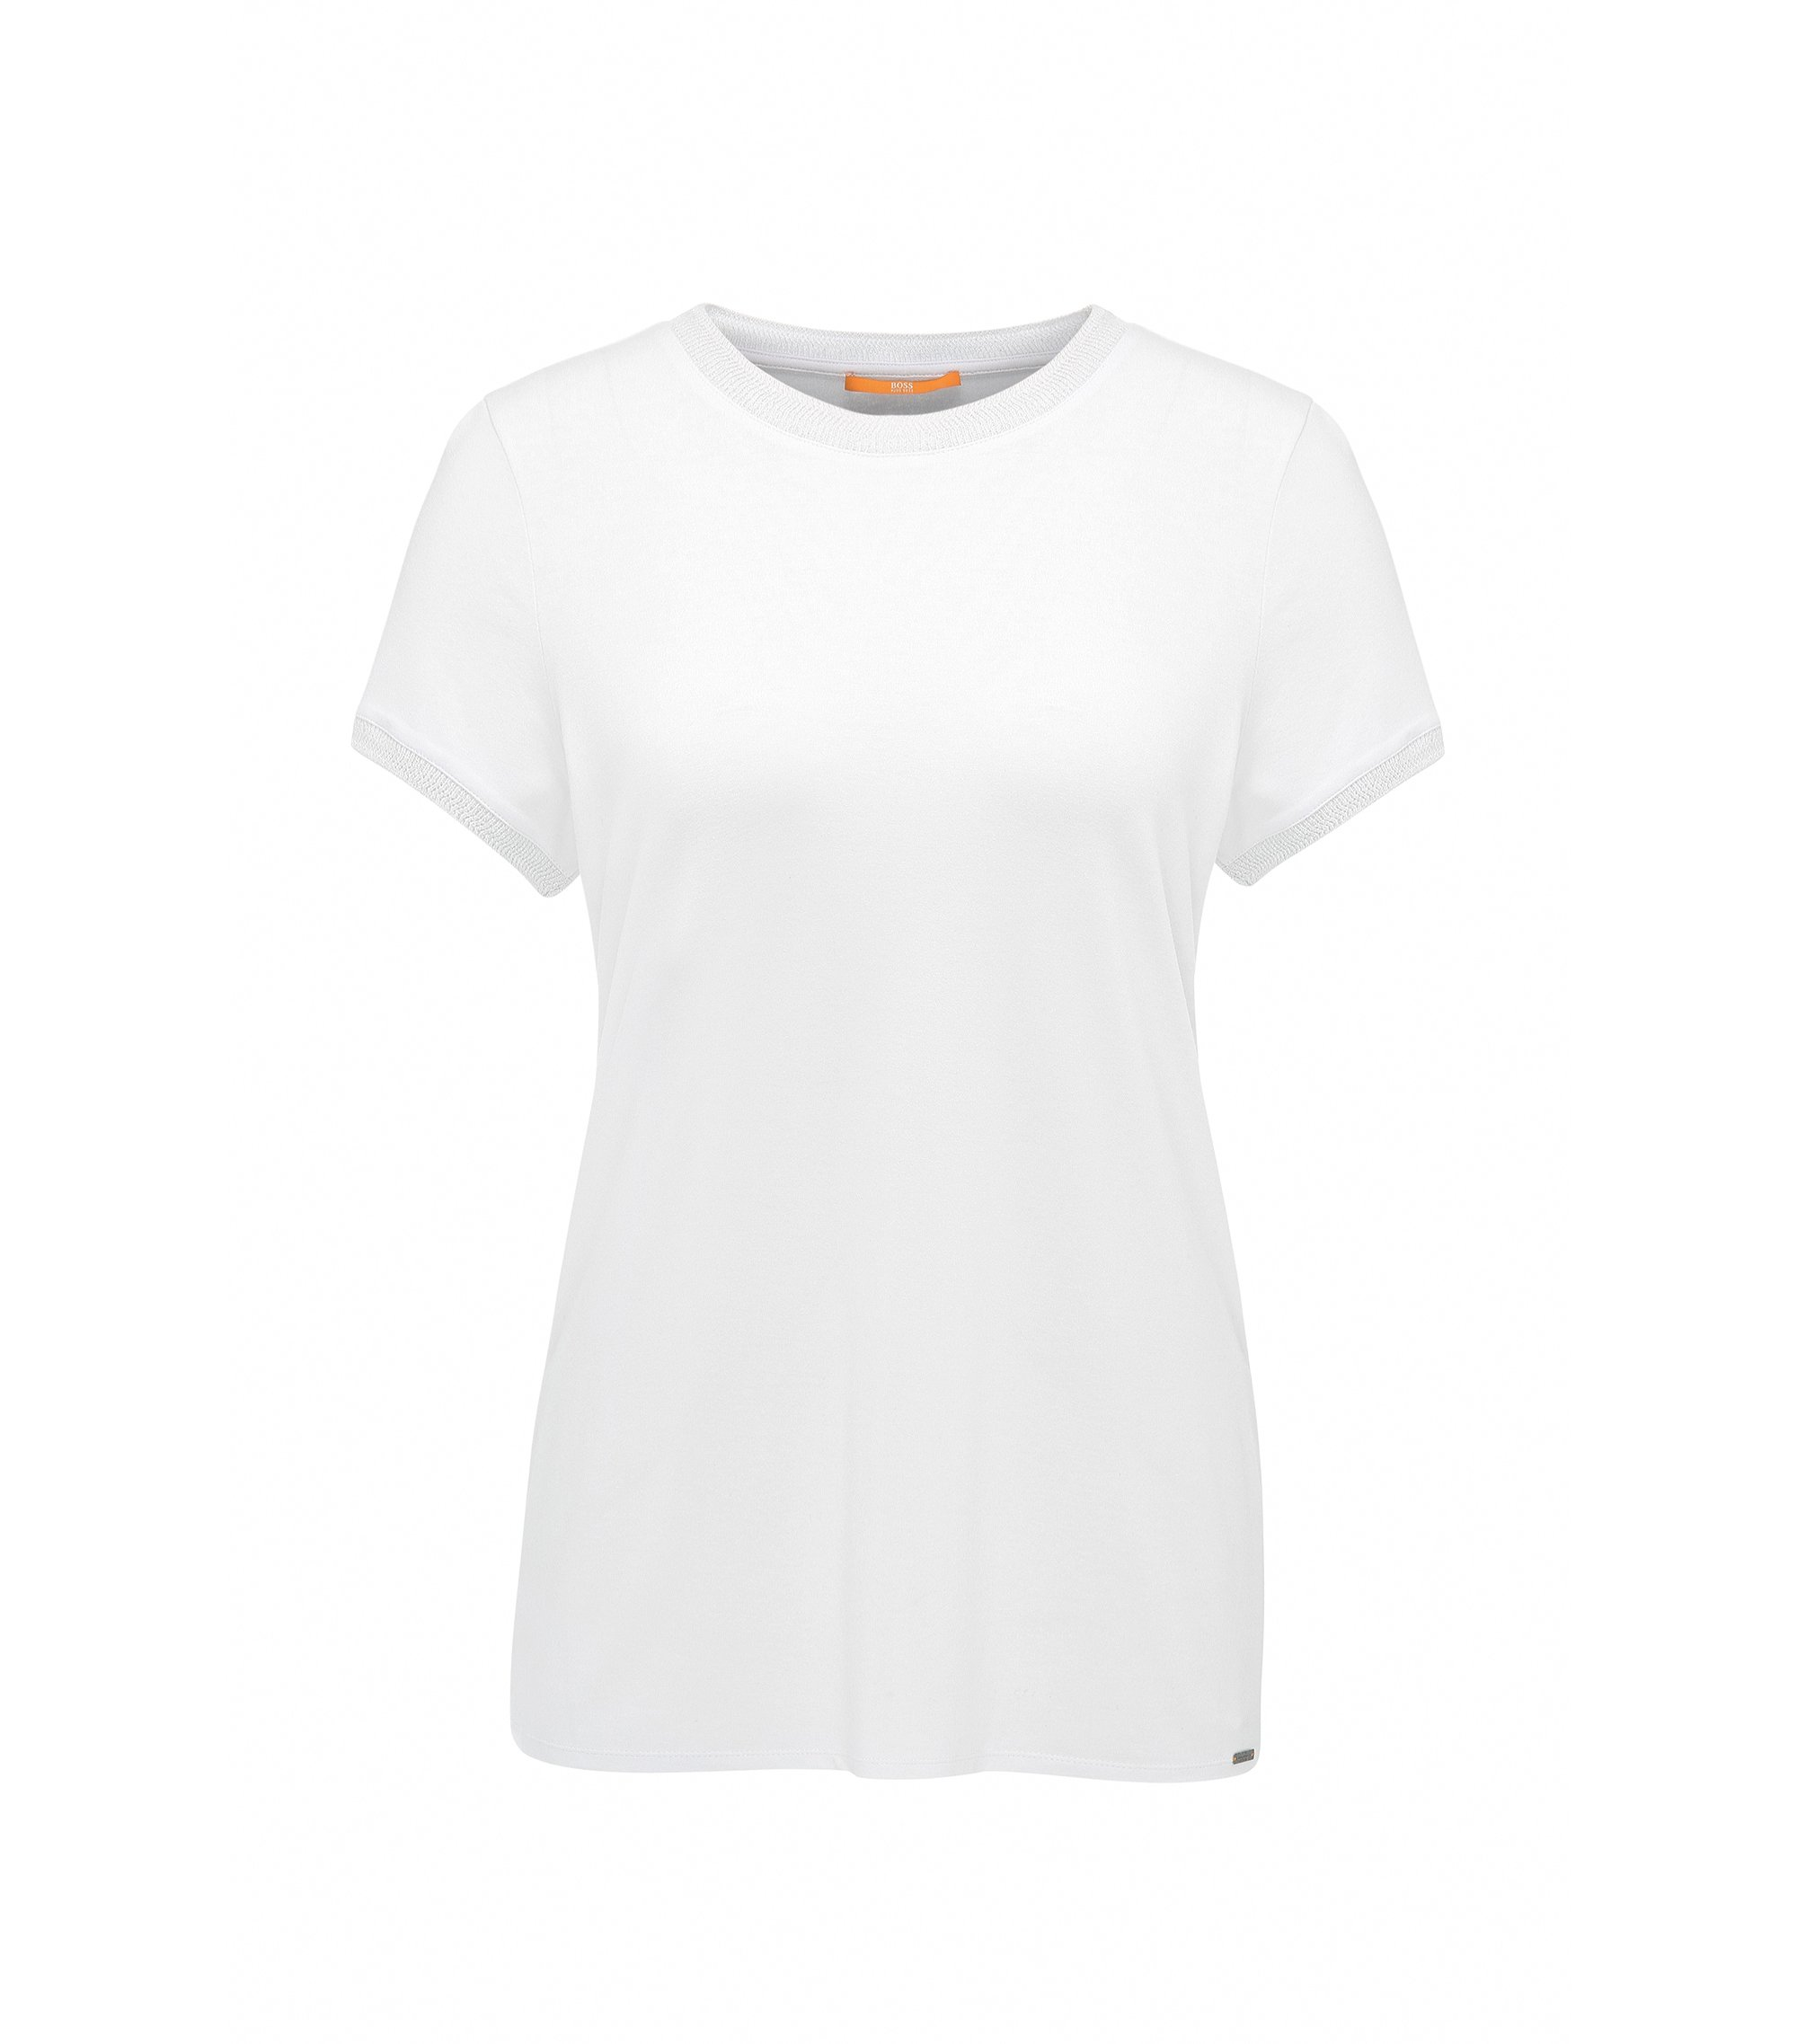 Regular-Fit T-Shirt aus elastischem Single Jersey, Weiß